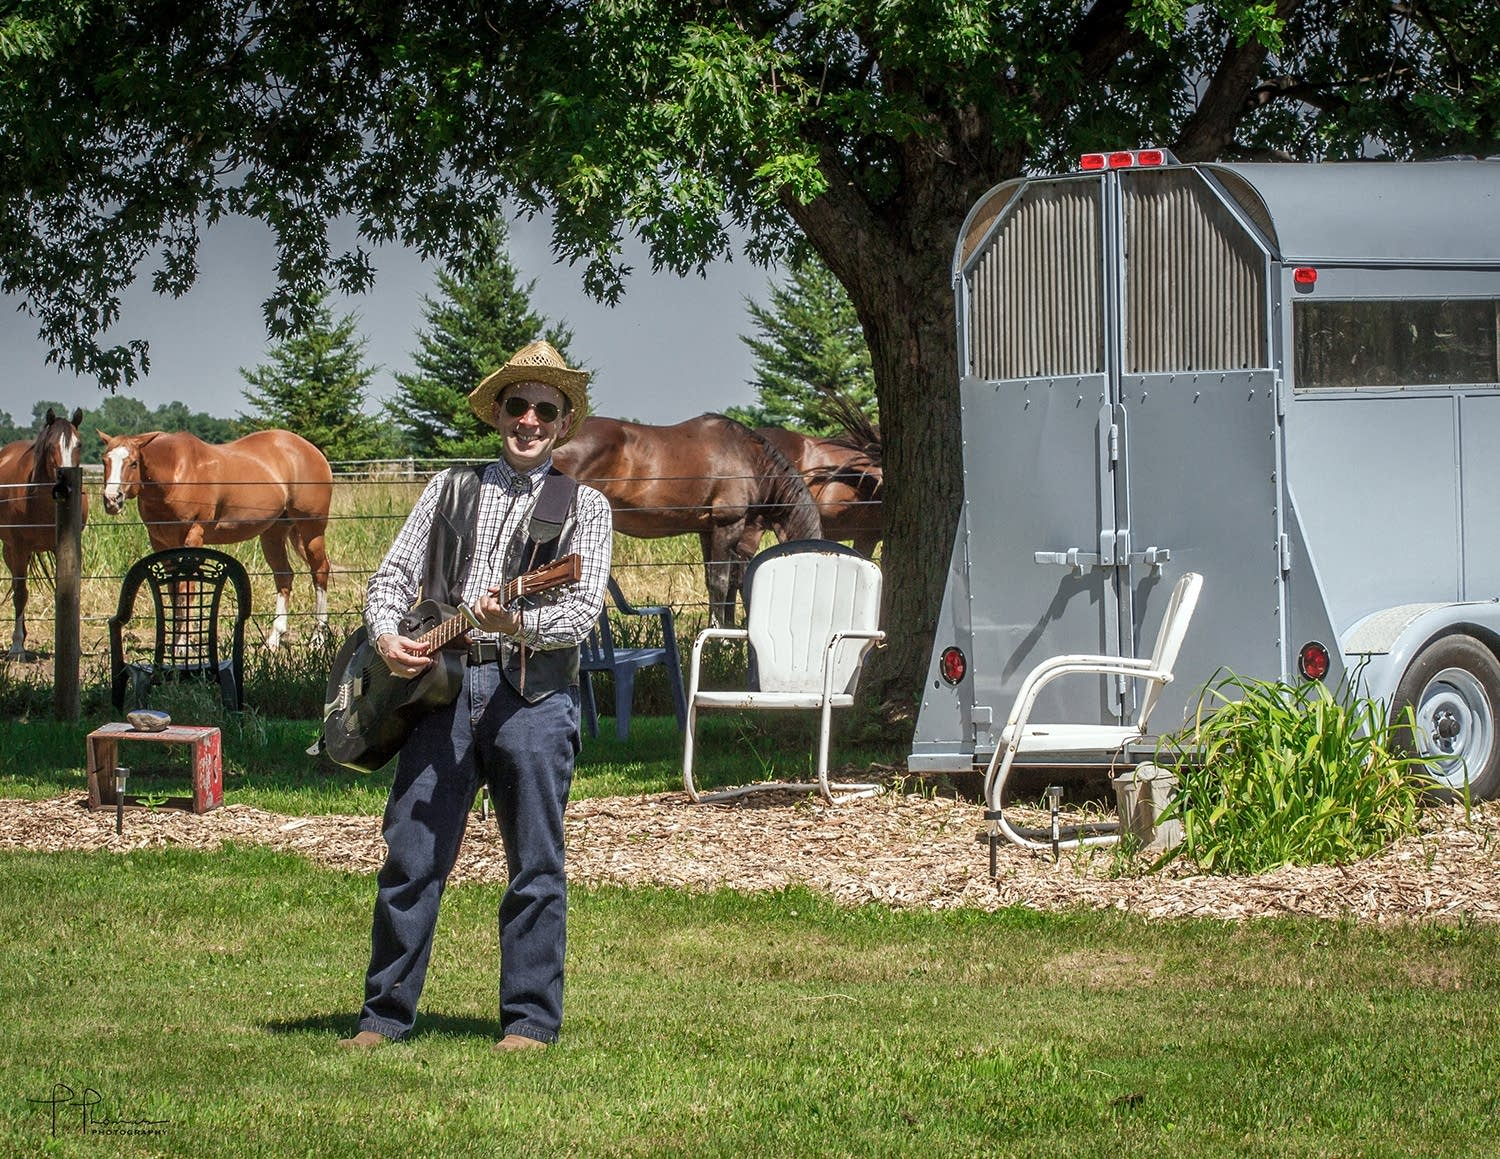 AJ Scheiber performs for the horses-07